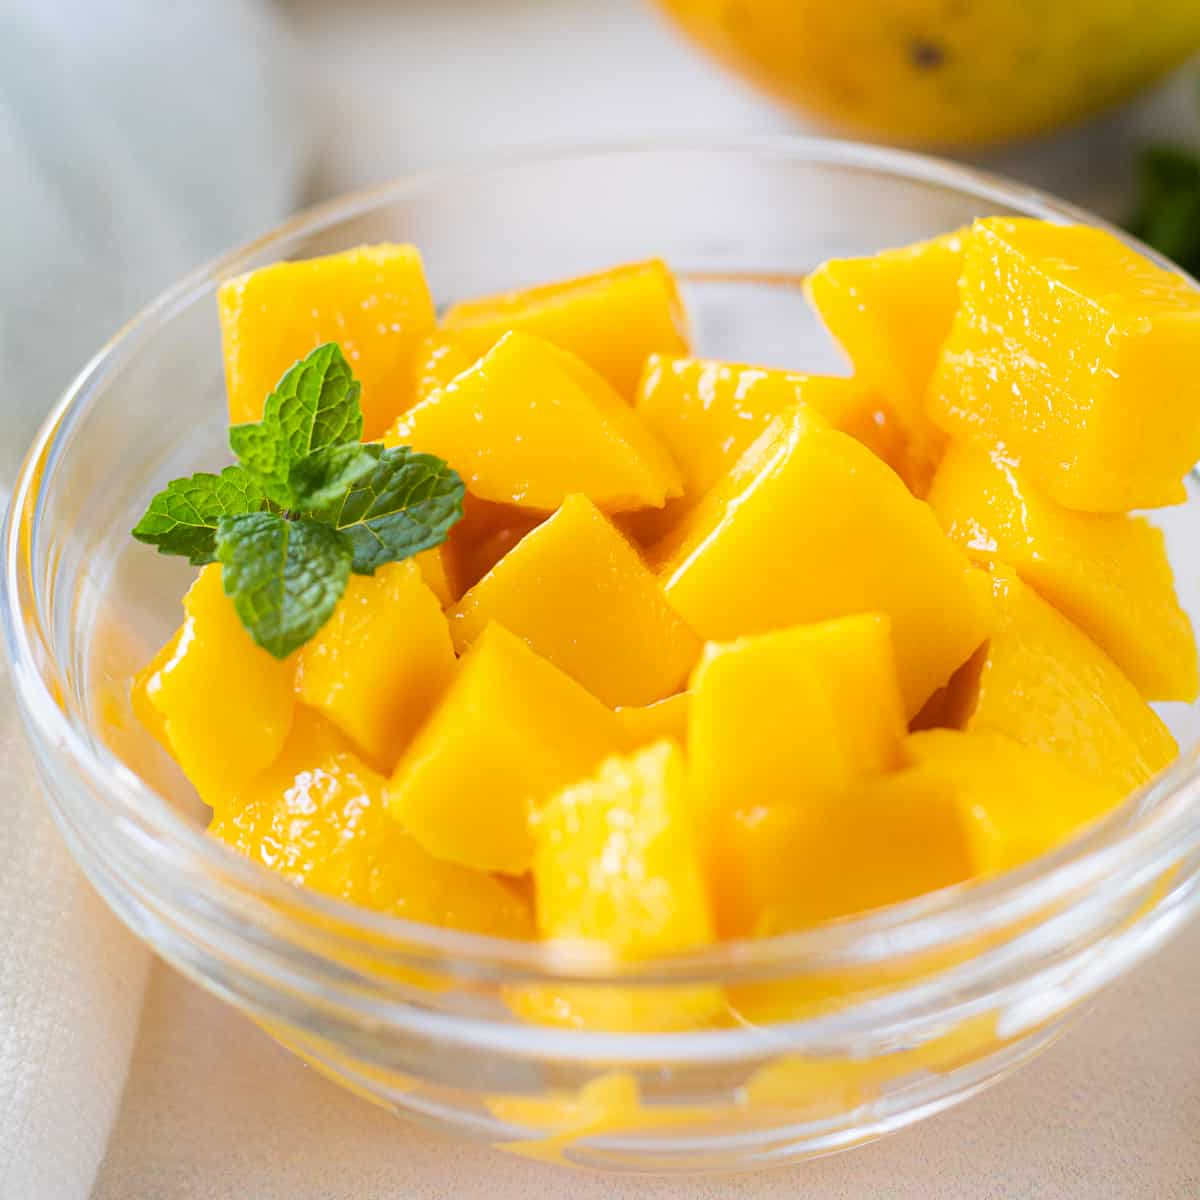 A close up of a bowl of cubed mango in a clear glass dish.